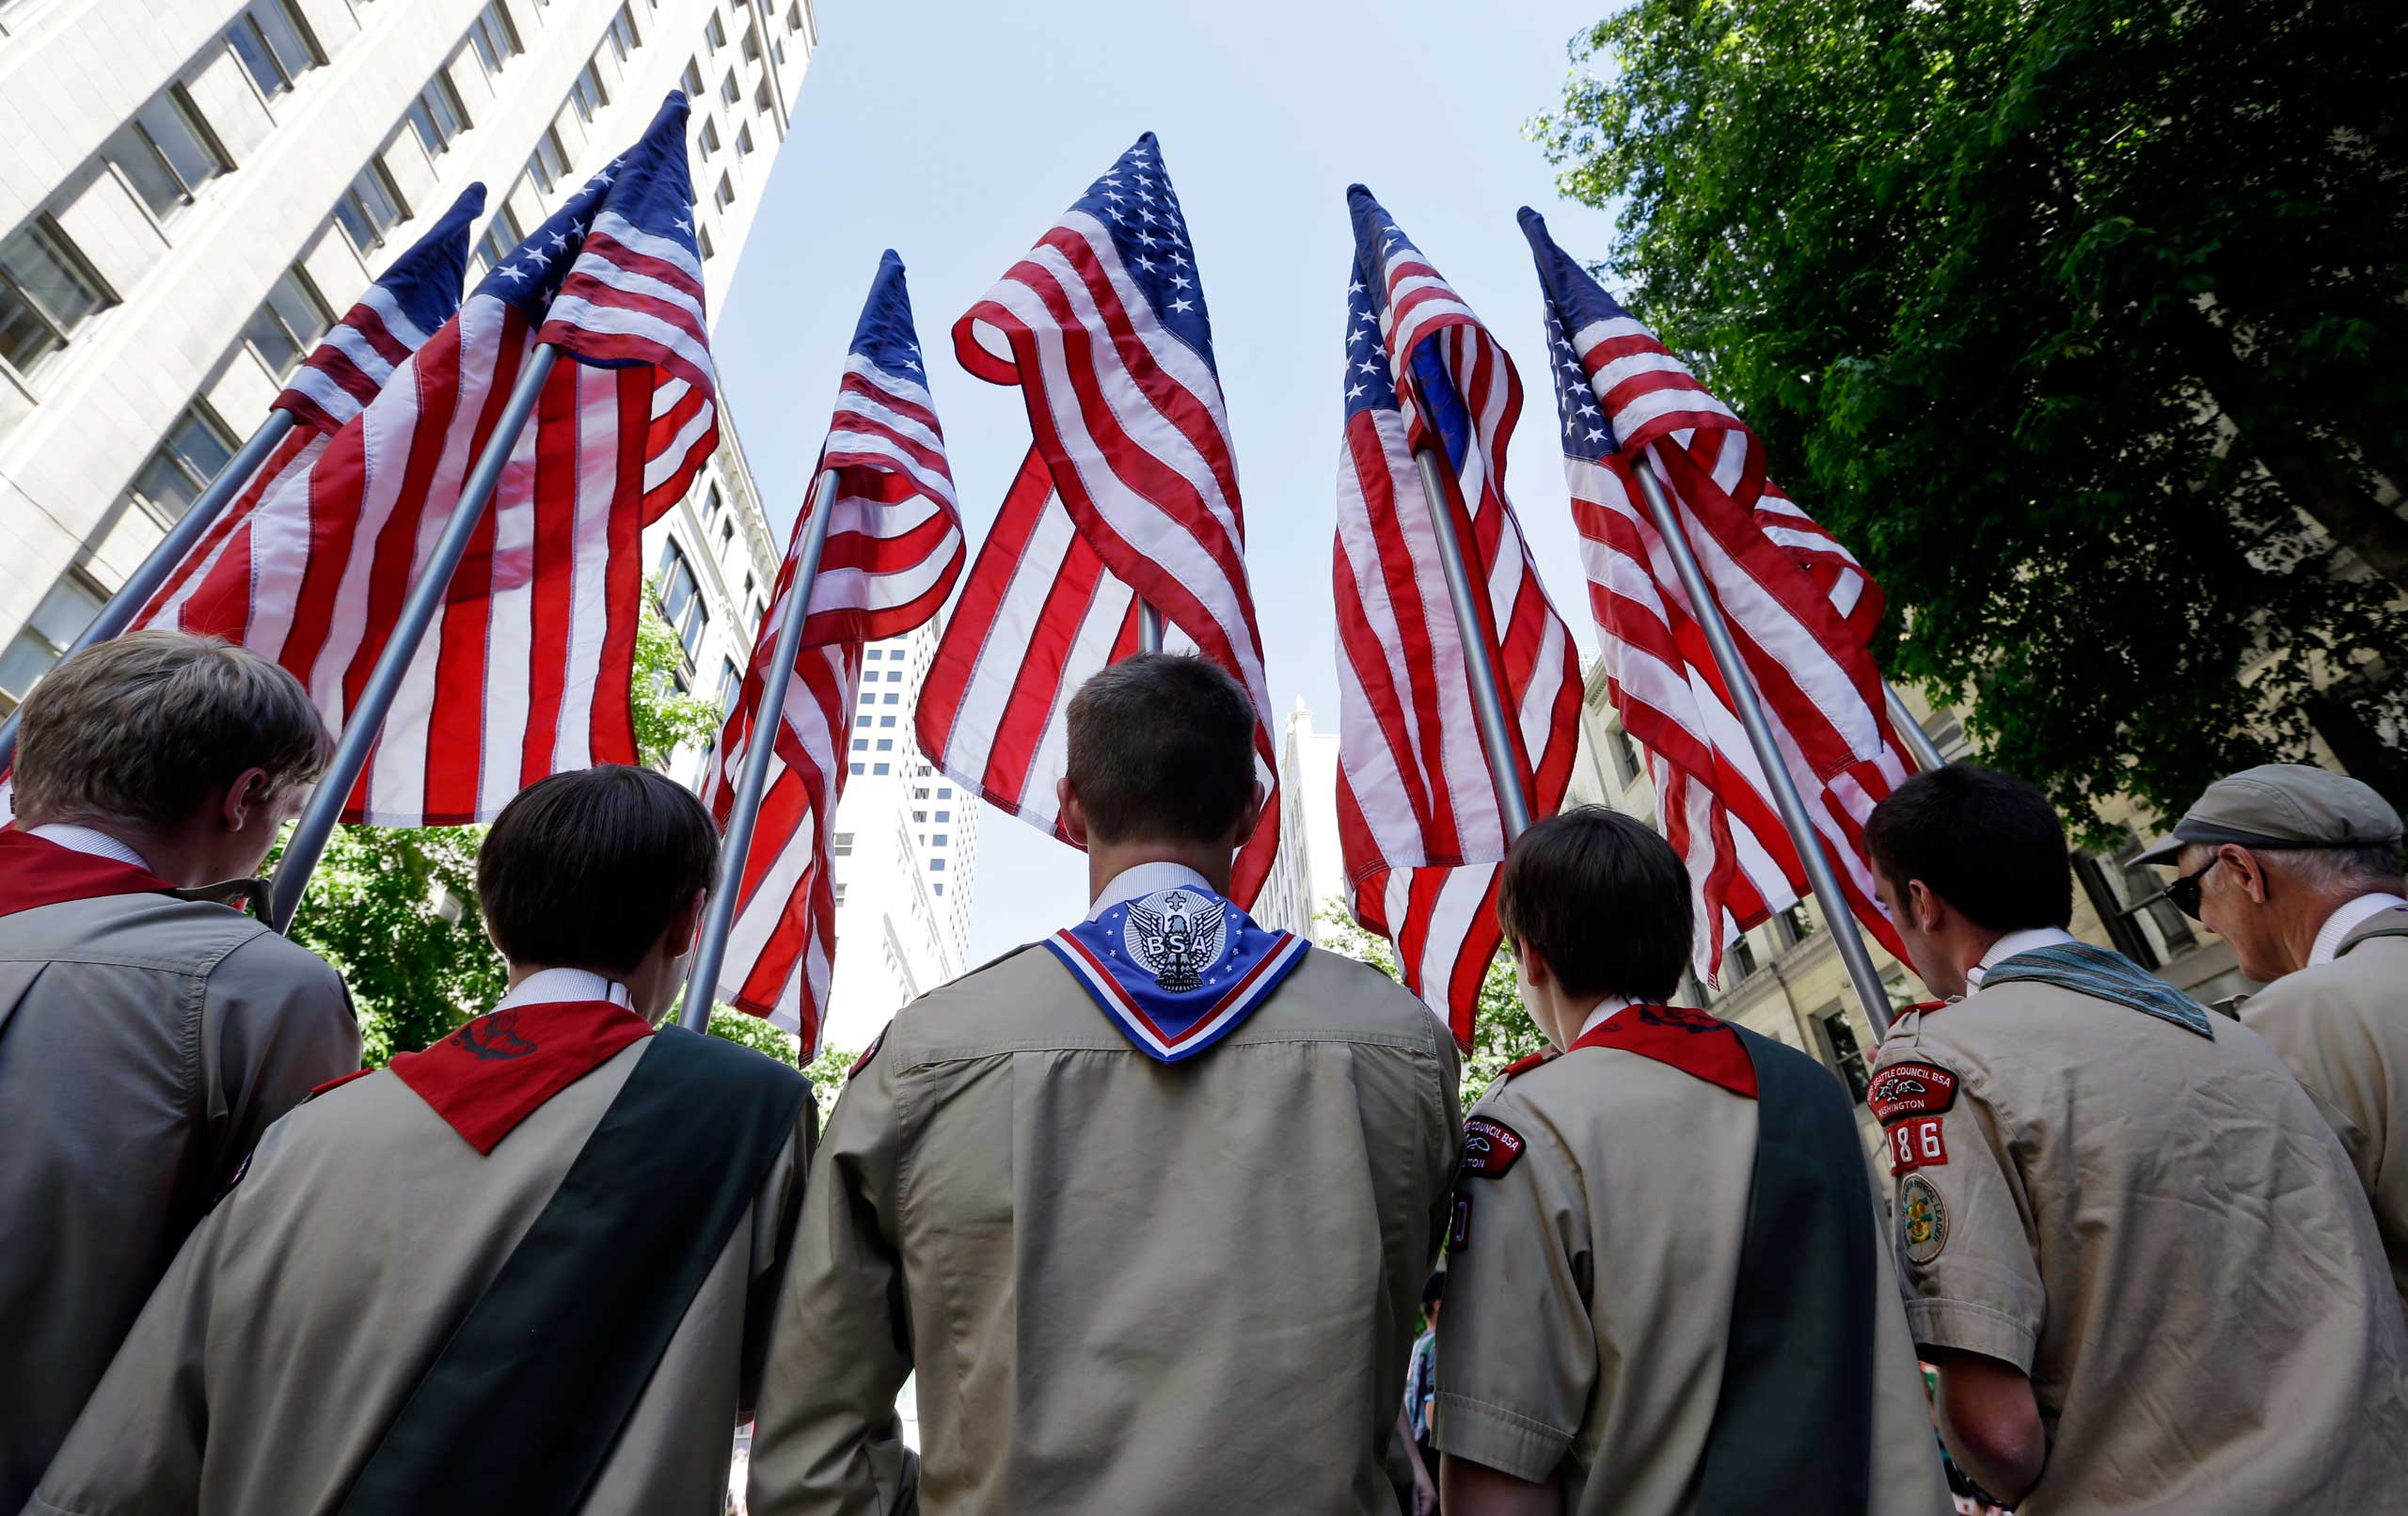 Boy Scouts from the Chief Seattle Council carry U.S. flags as they prepare to march in the Gay Pride Parade in downtown Seattle on June 30, 2013.